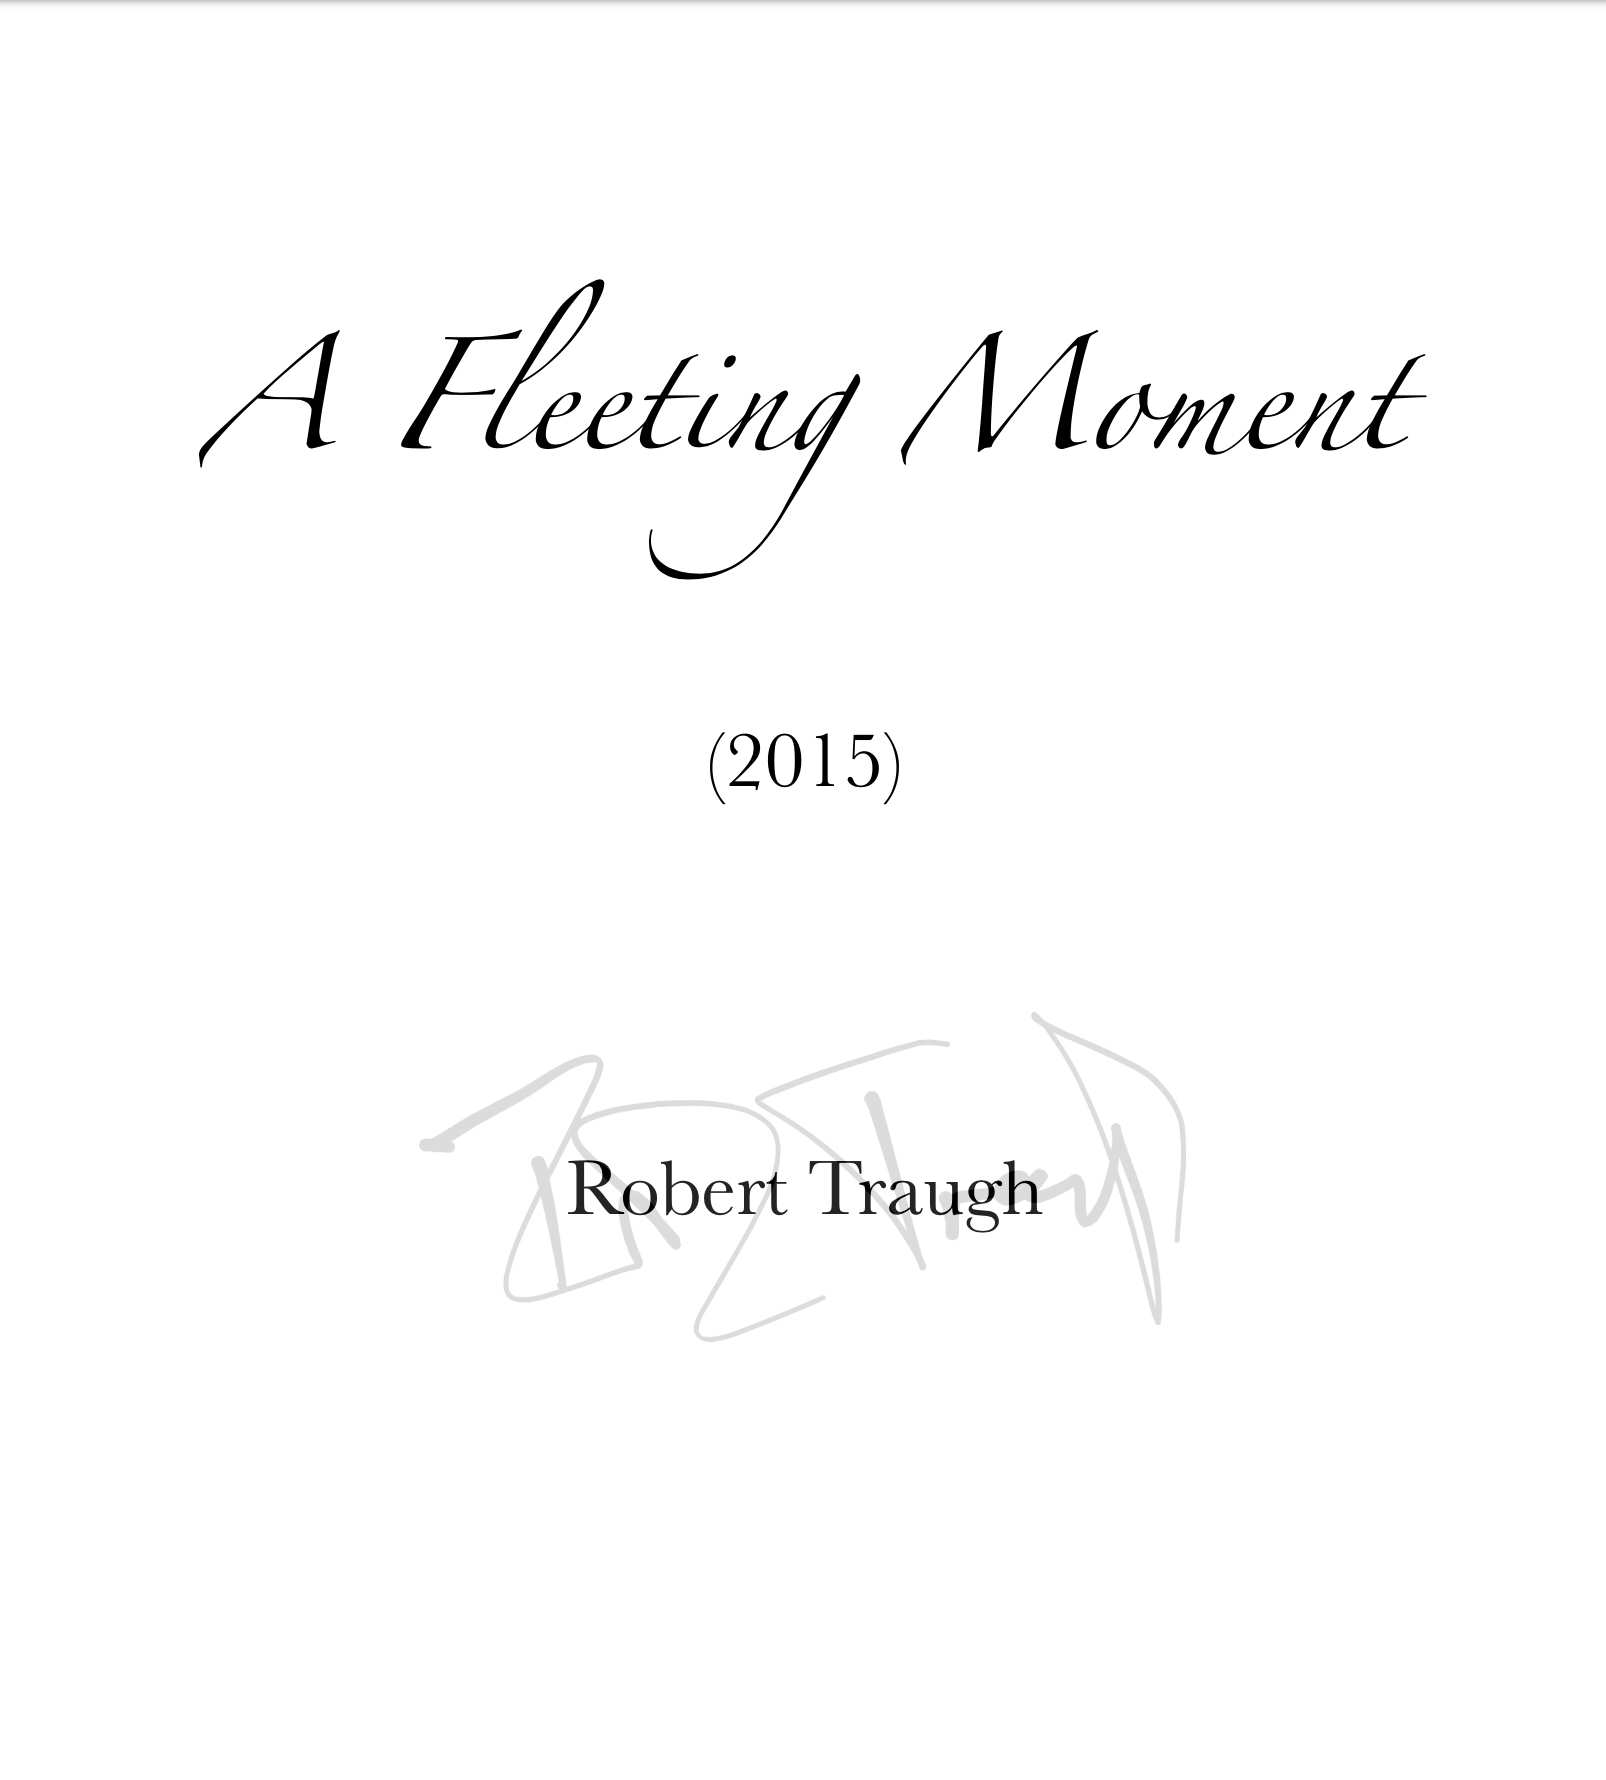 A Fleeting Moment by Rob Traugh